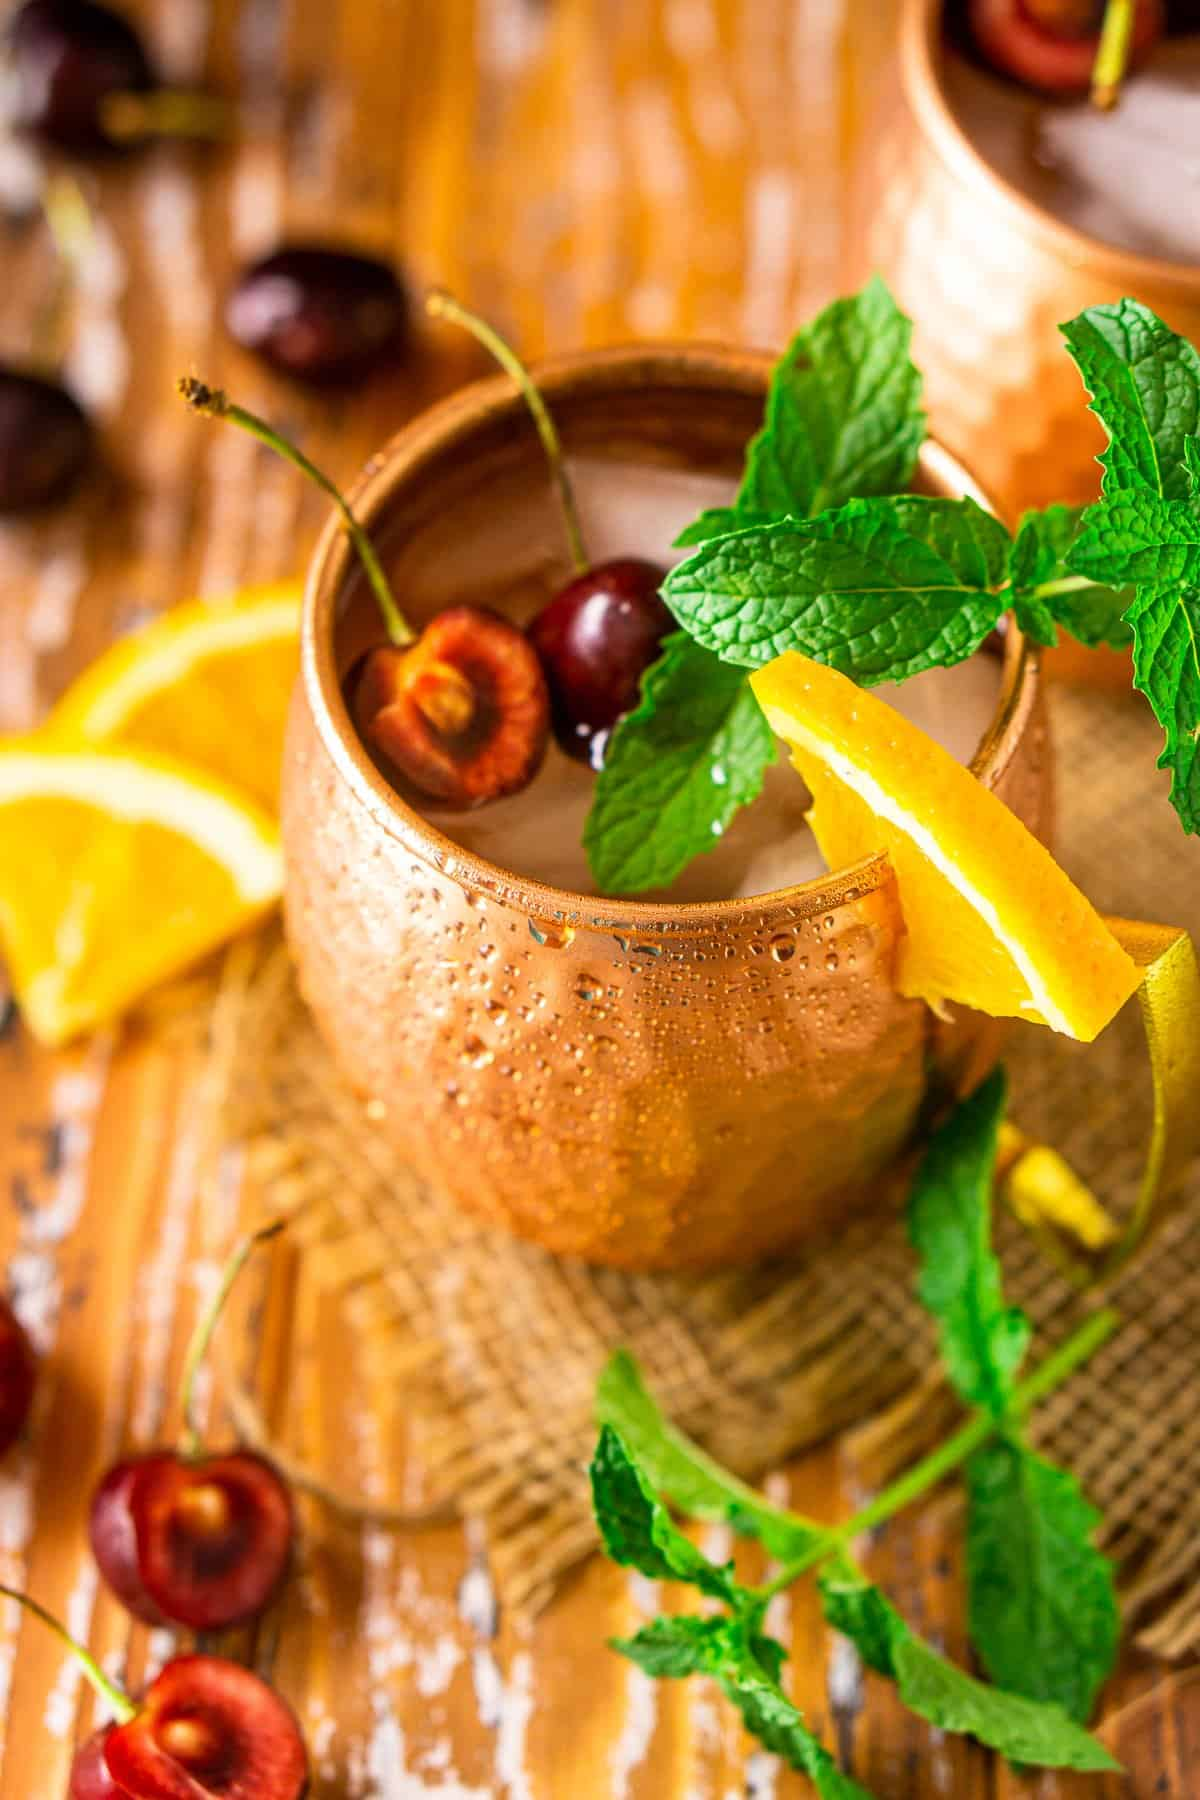 An aerial view of the Kentucky mule with cherry, orange and mint garnishes.